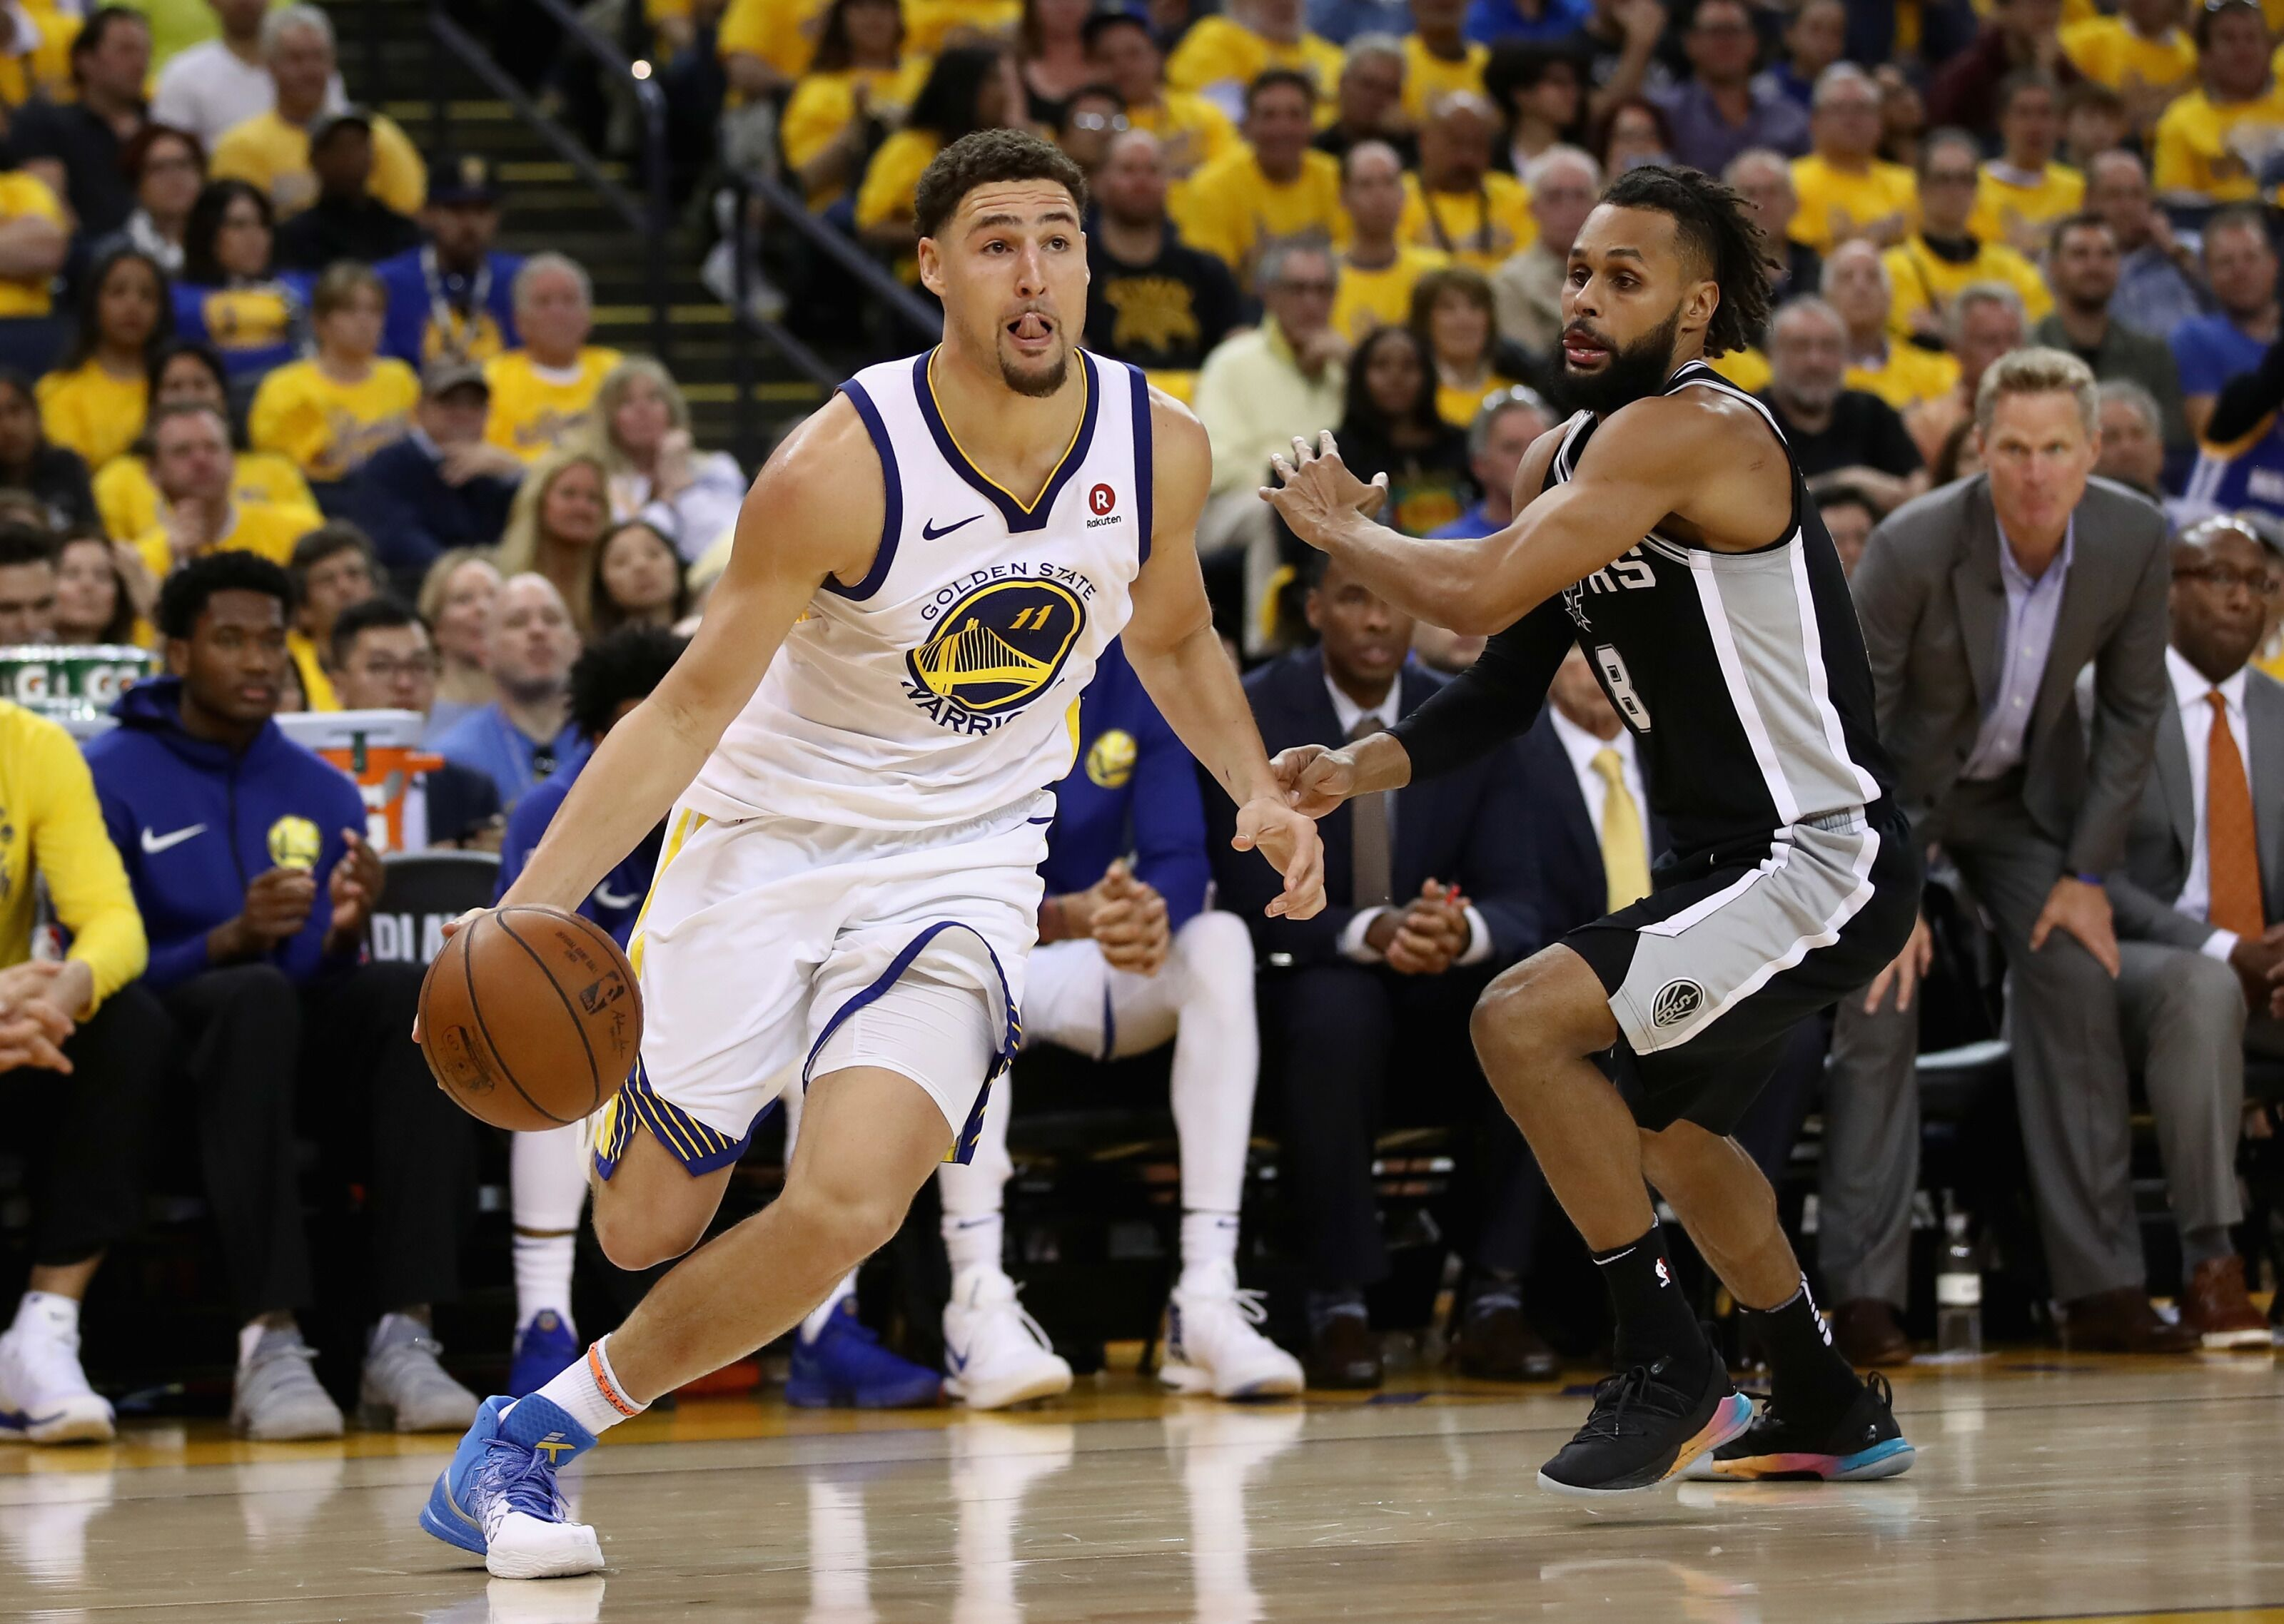 950971426-san-antonio-spurs-v-golden-state-warriors-game-five.jpg